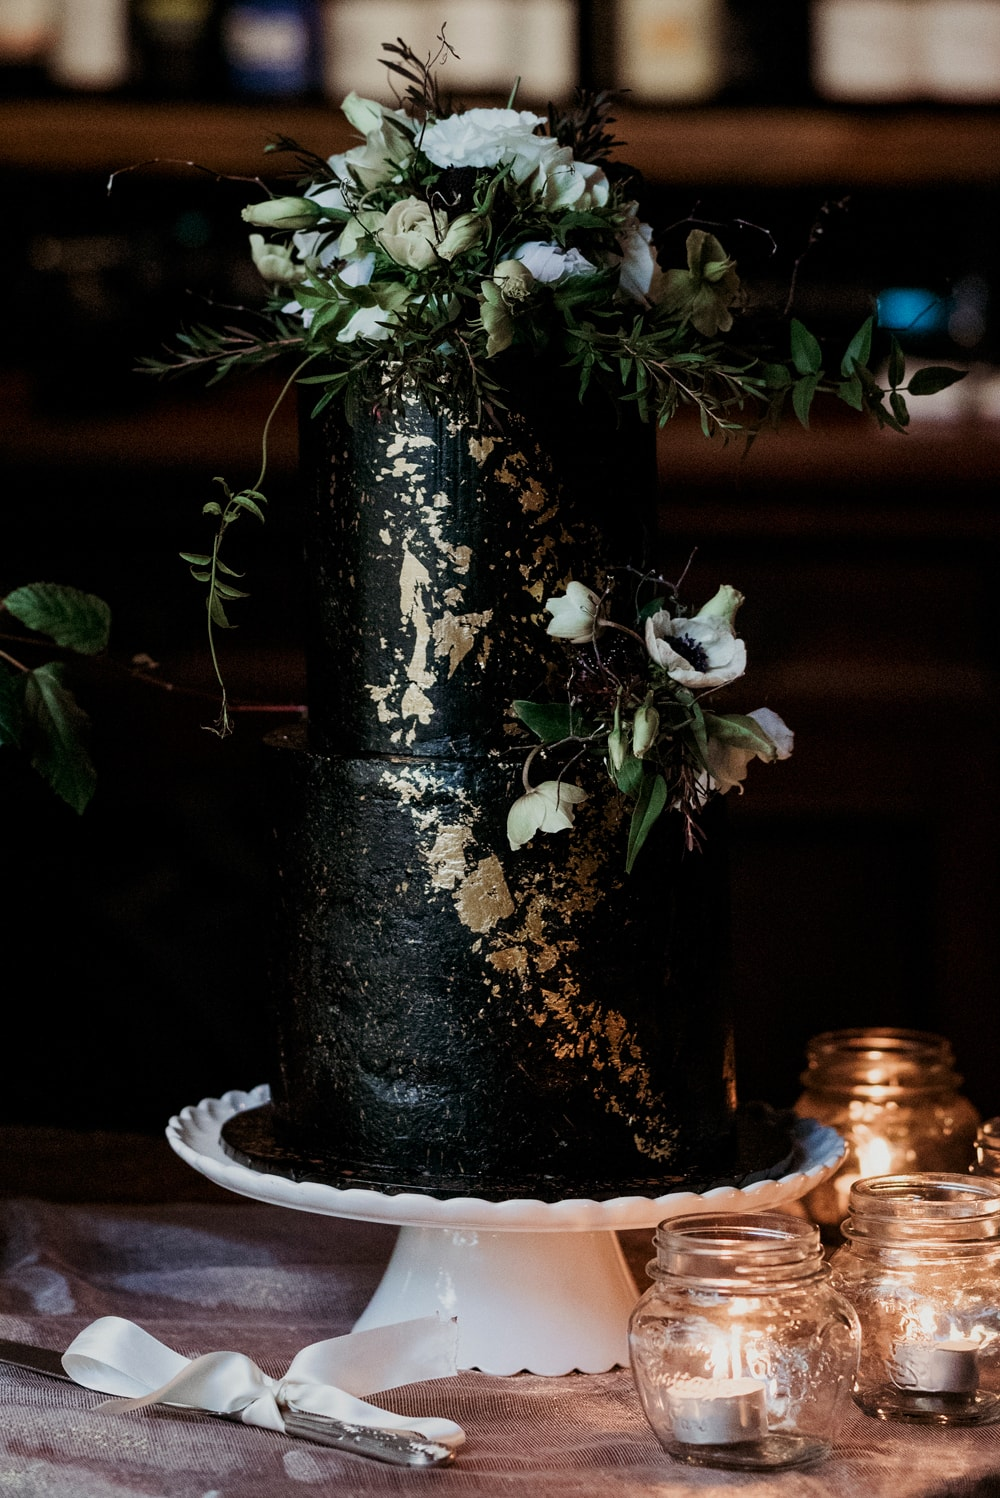 Striking Black & Forest Green Wedding Inspiration | Photography: New Black Studios